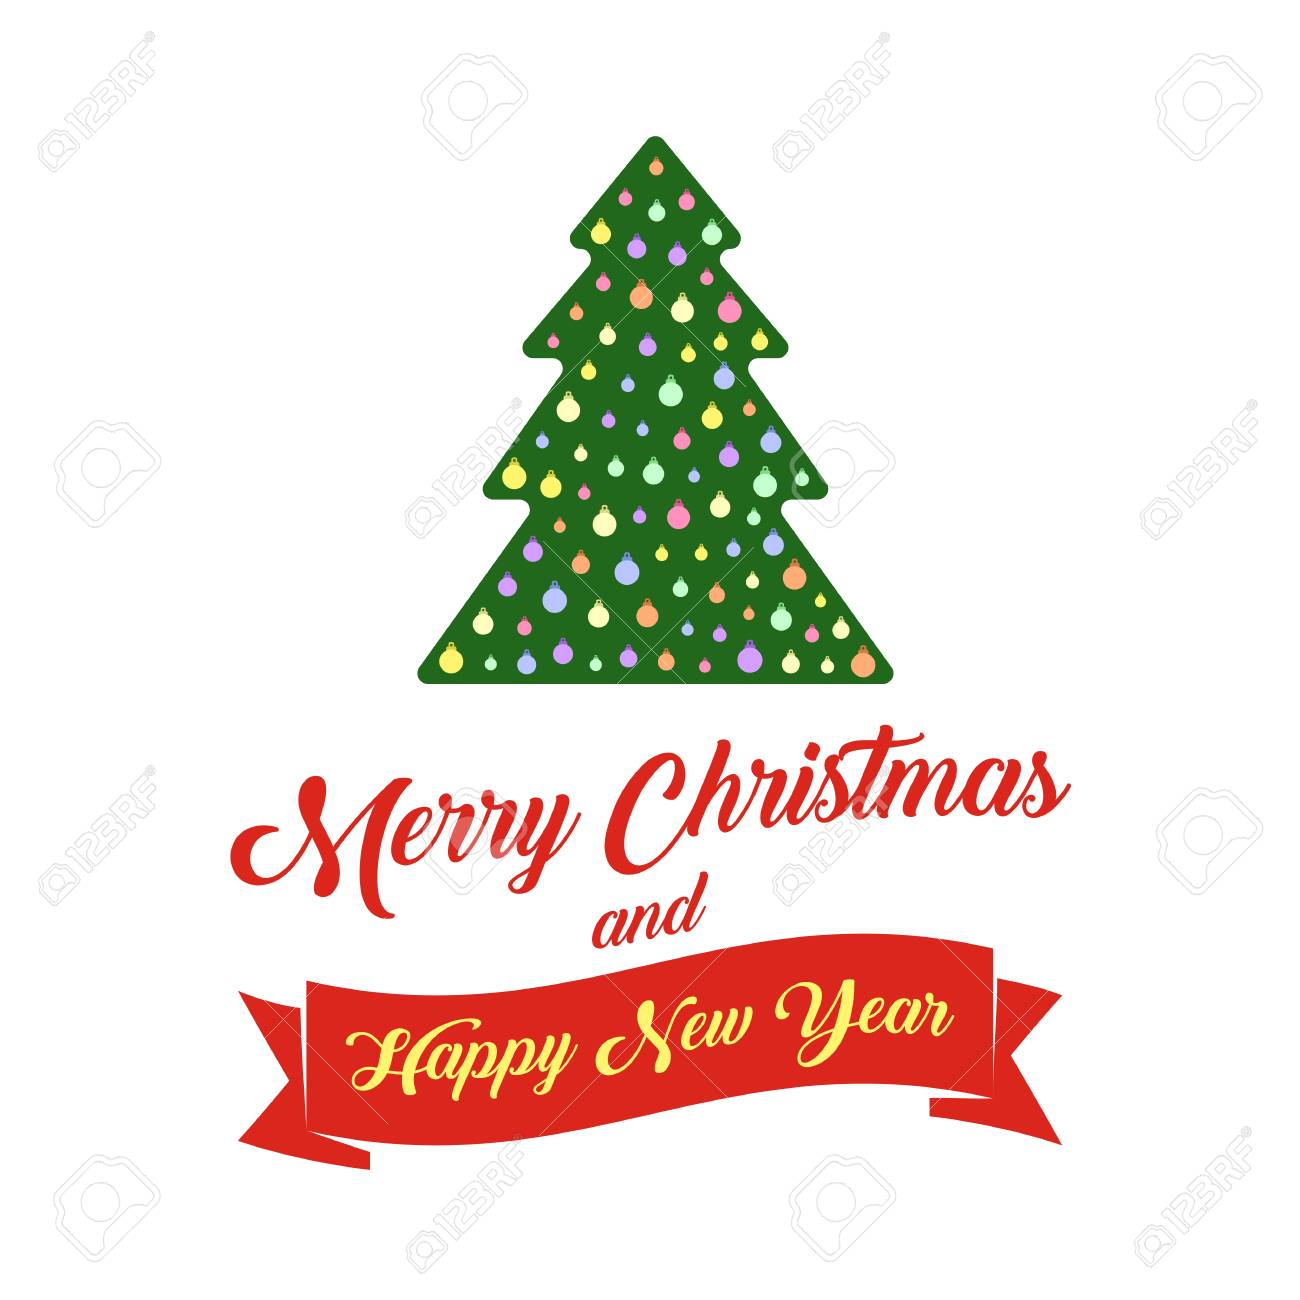 christmas tree and text merry christmas and happy new year banner royalty free cliparts vectors and stock illustration image 87430520 christmas tree and text merry christmas and happy new year banner